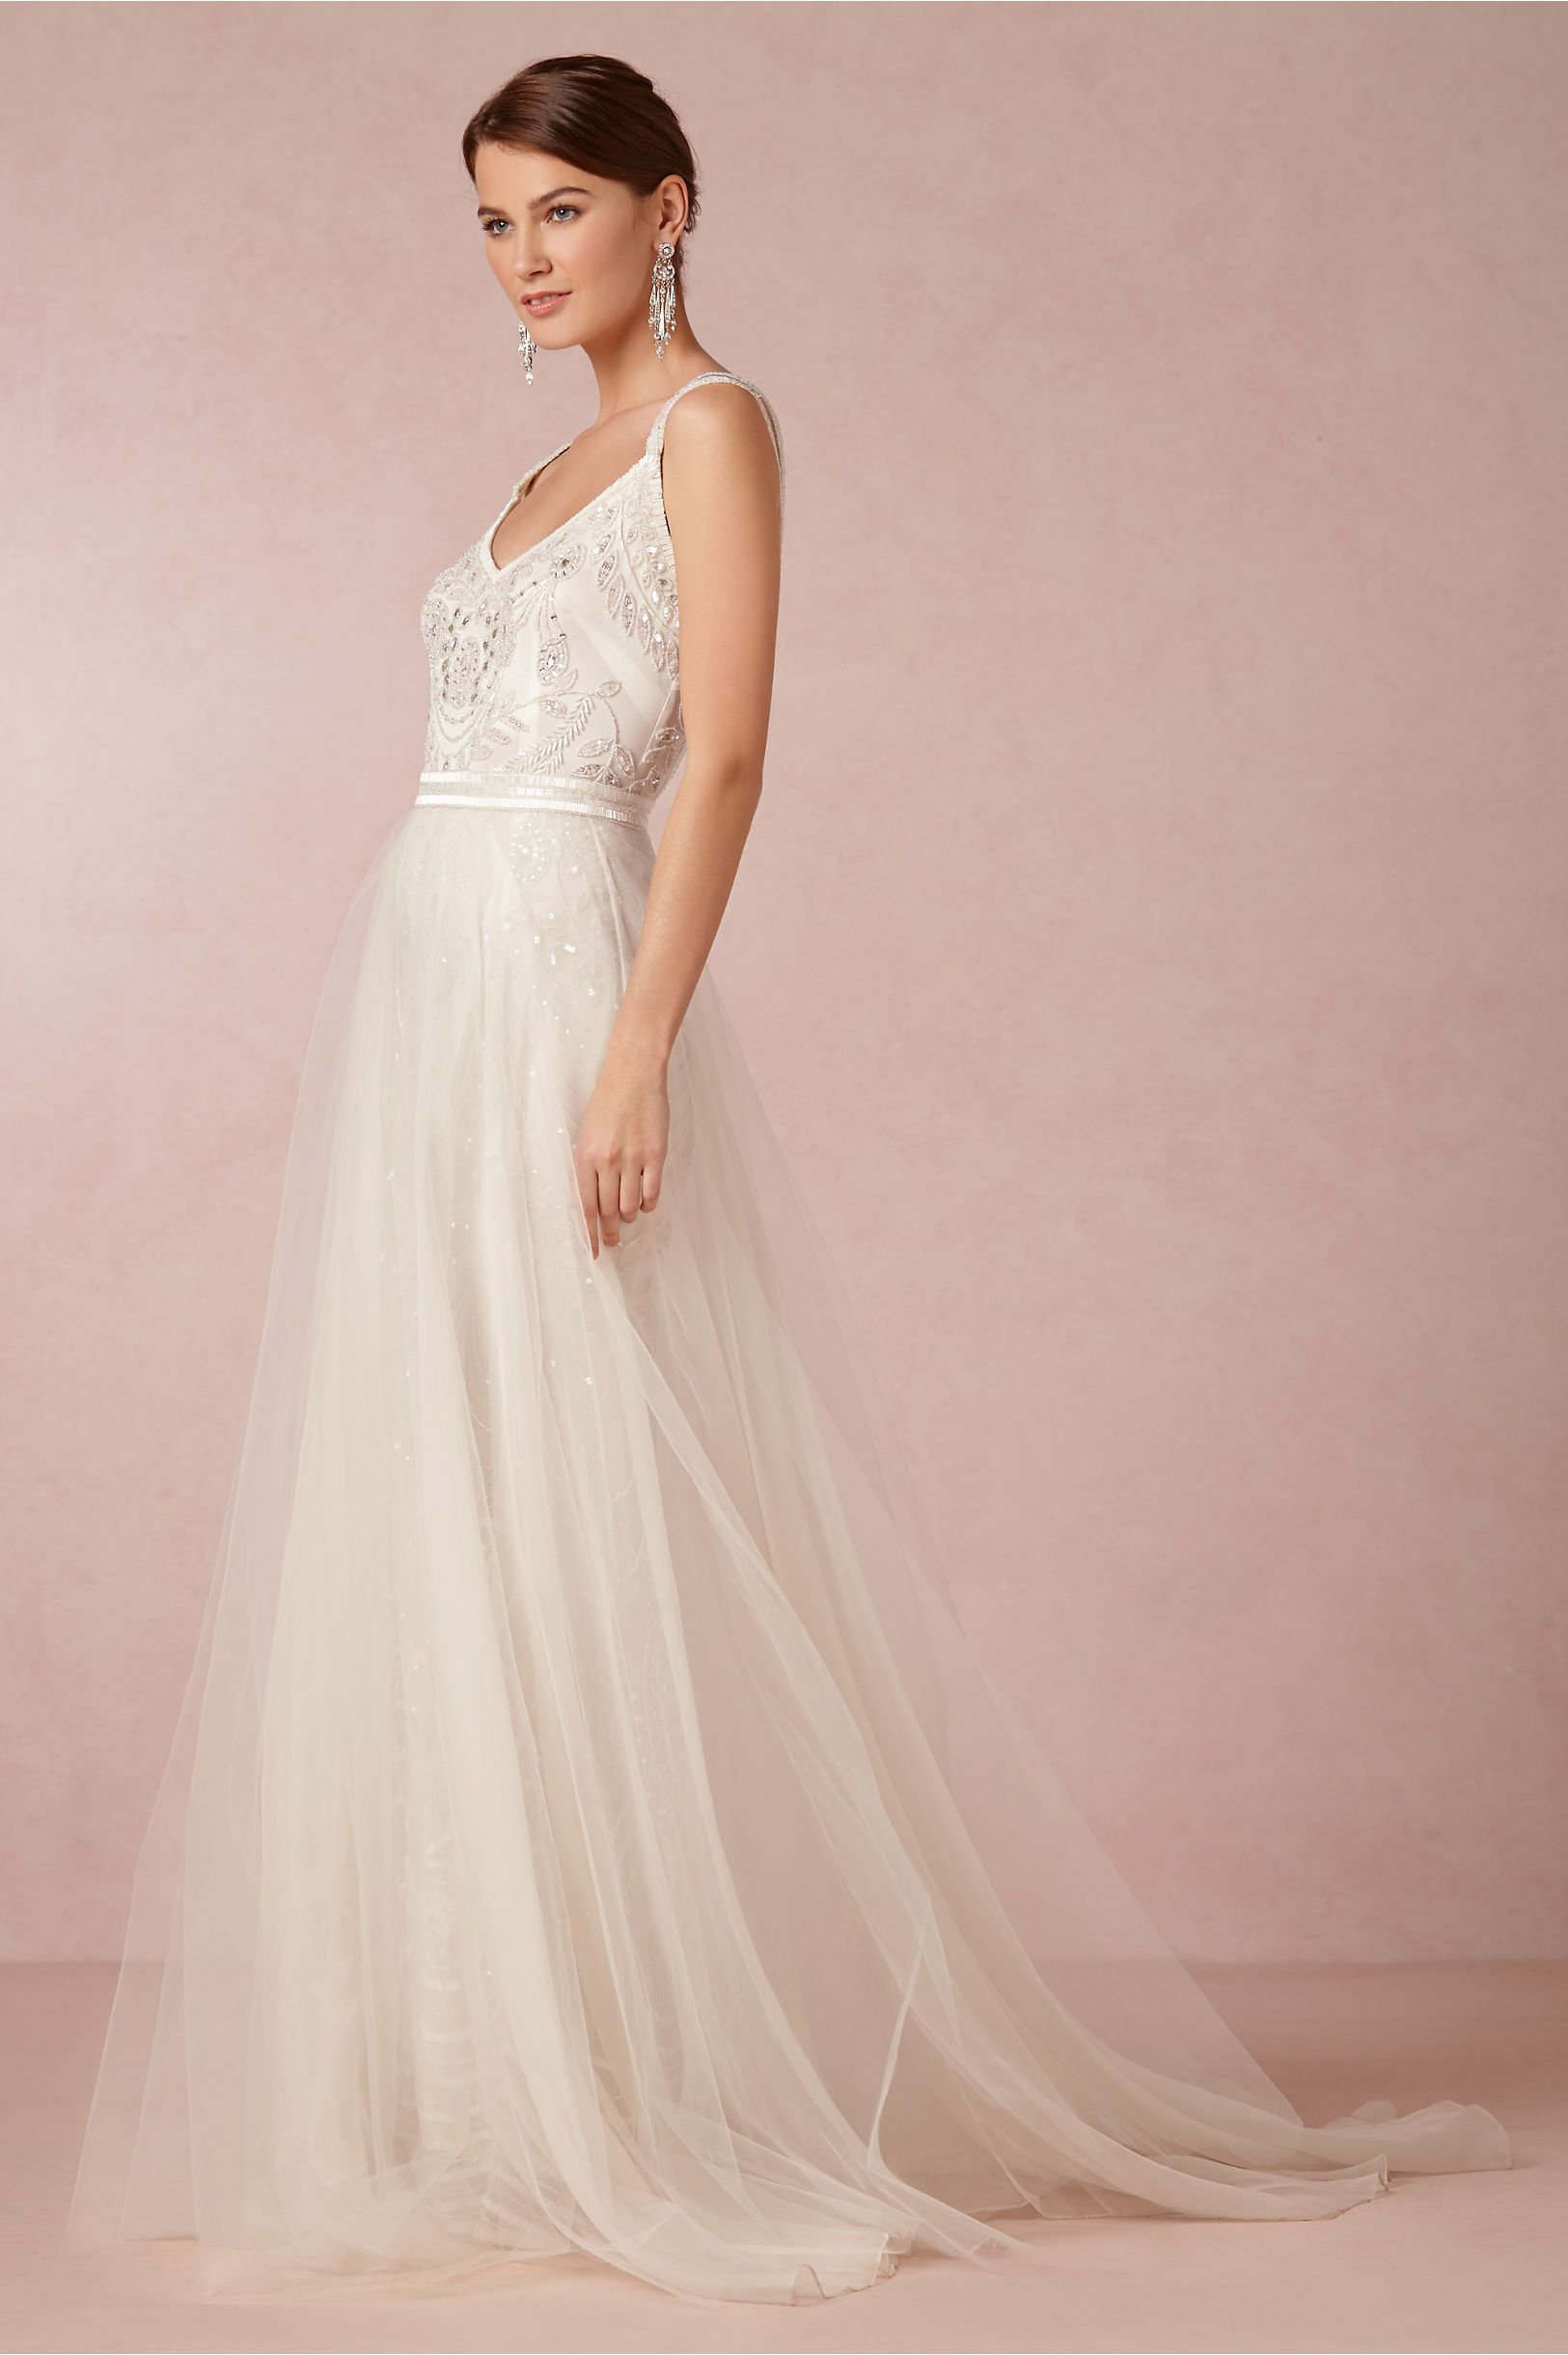 BHLDN de Anthropolo mod. | Weddalia | Vestidos | Pinterest ...